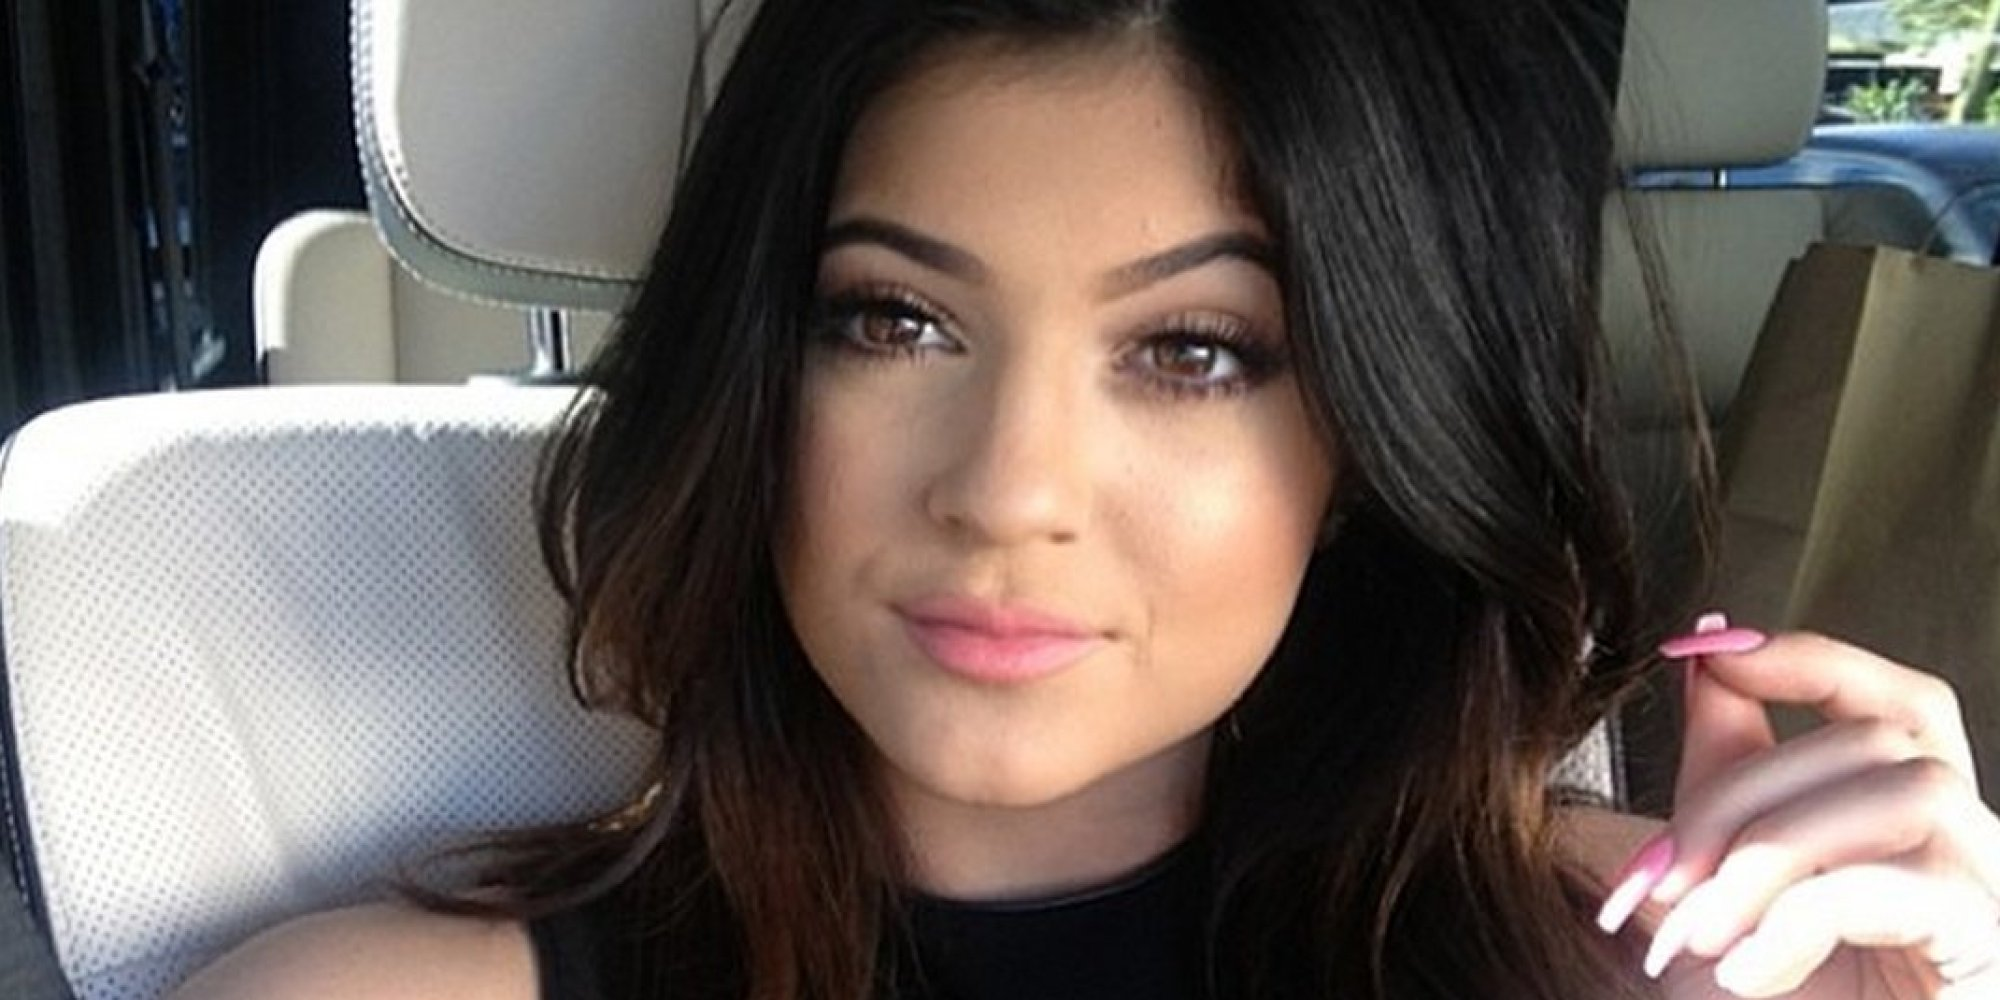 Kylie Jenner Shares Racy Photo Of Her New Gun Tattoo